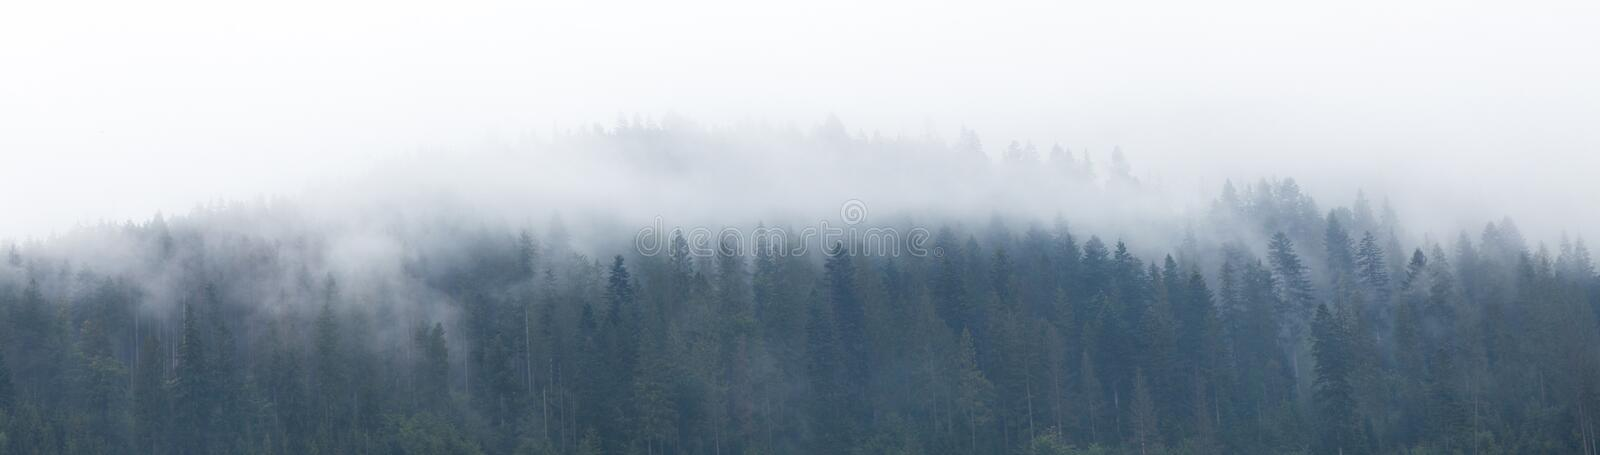 Mountain foggy background, forest fog, mist landscape stock photo